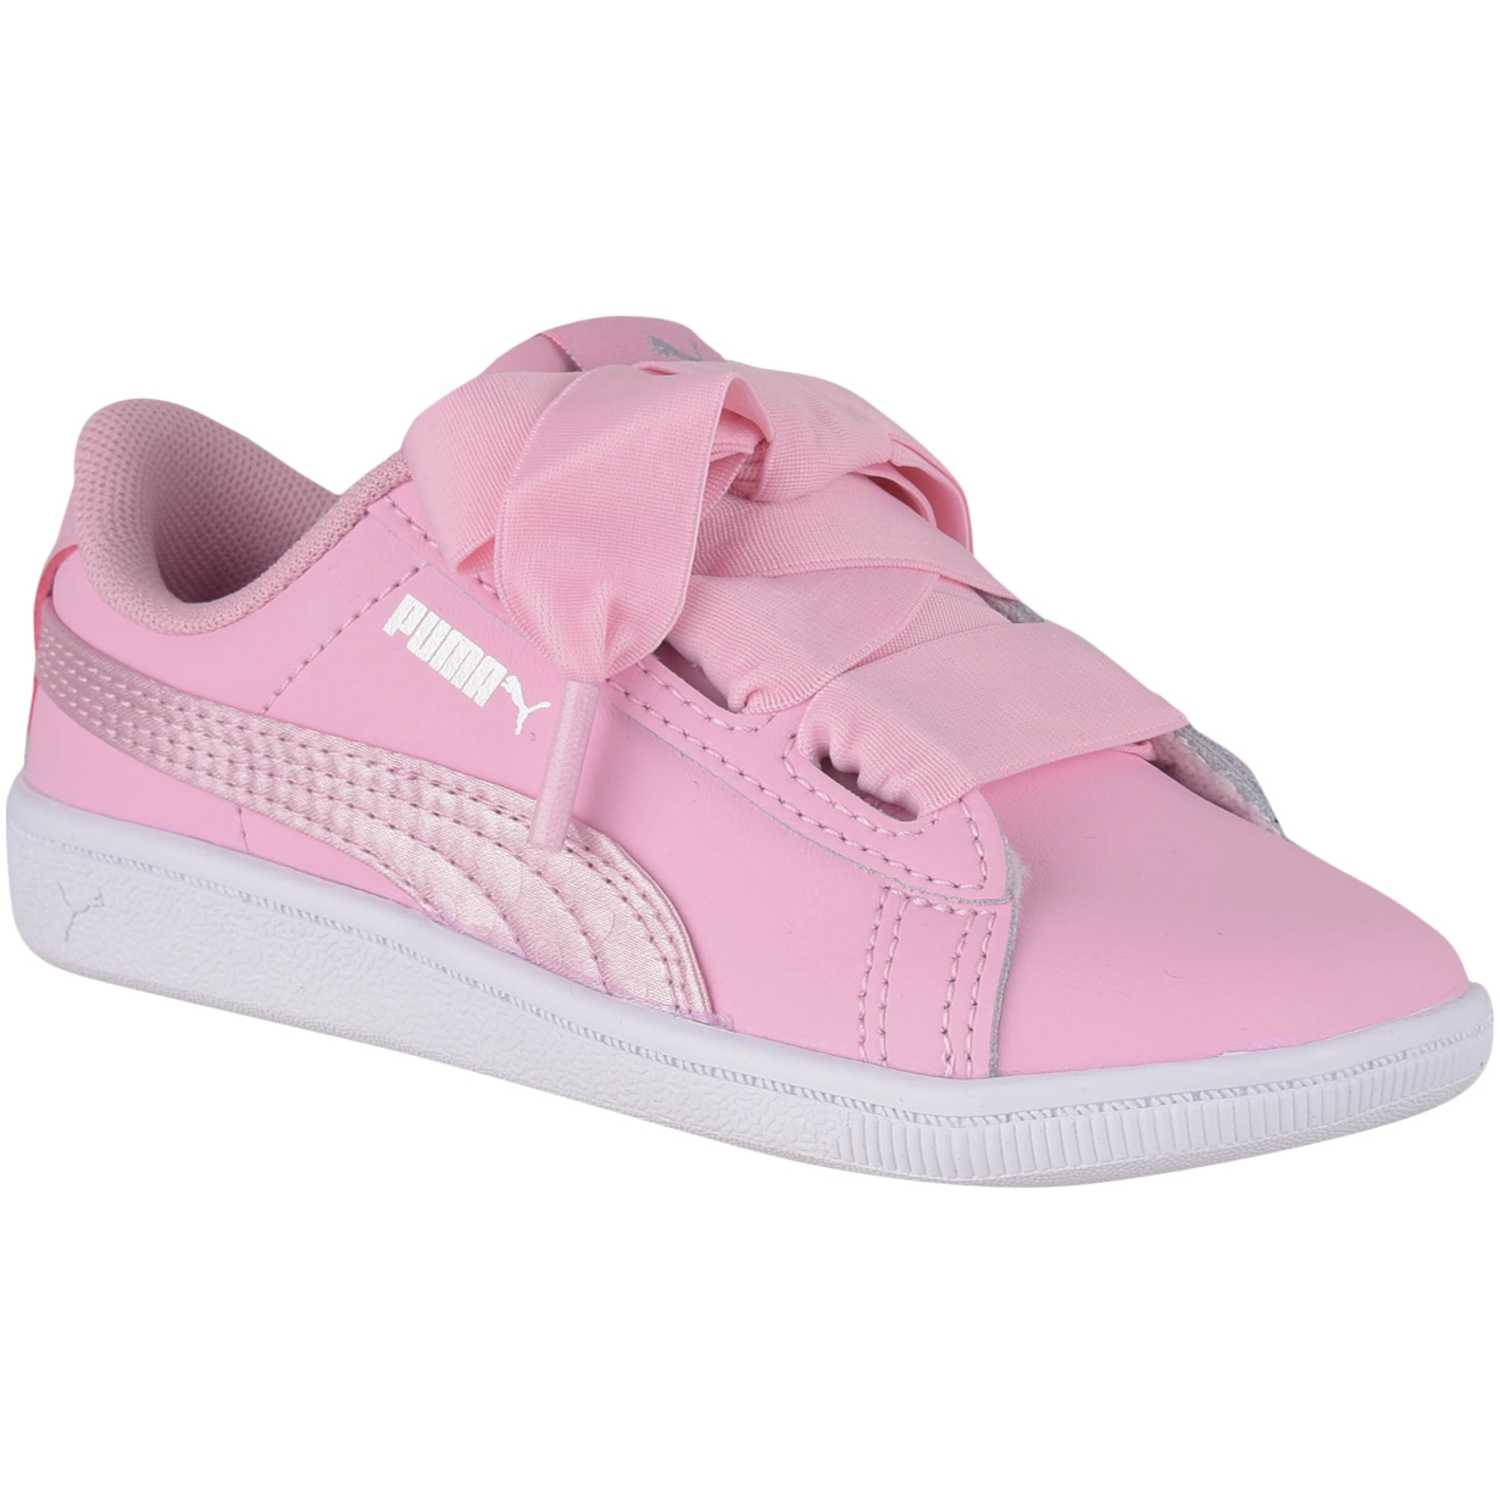 Puma puma vikky ribbon l satin ac inf Rosado / blanco Walking